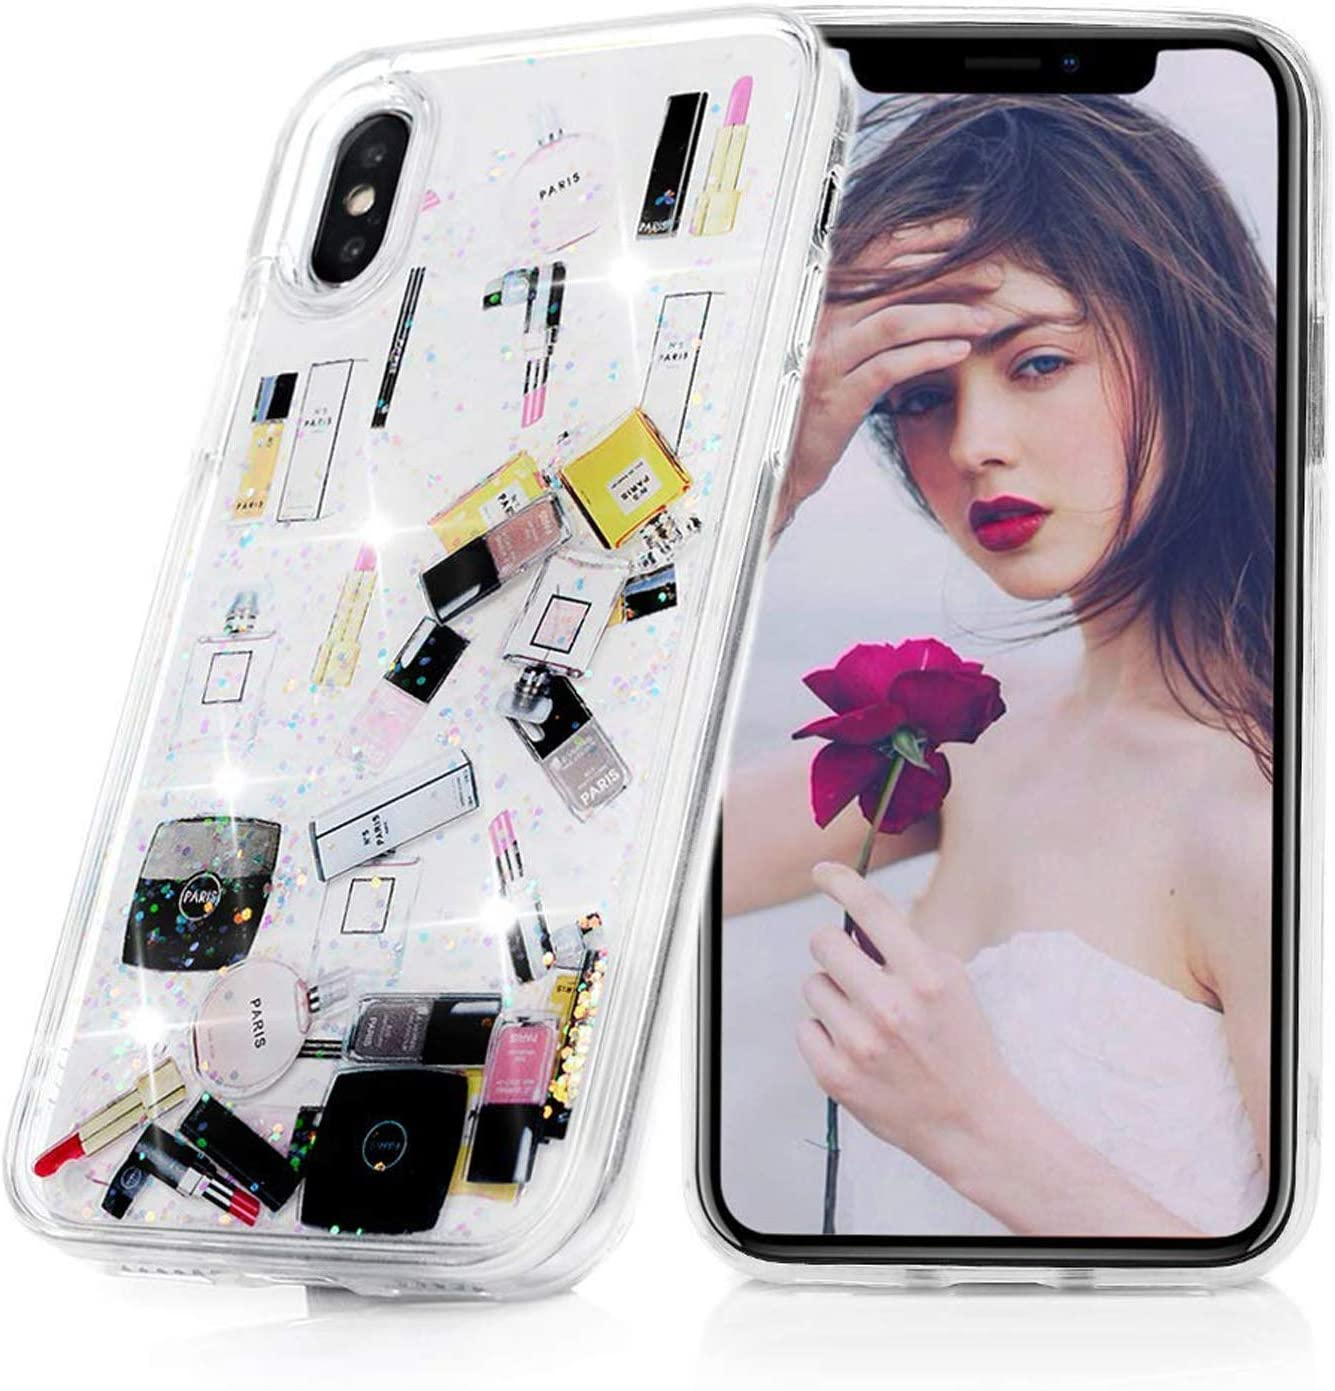 G.J.FACASE iPhone XR Glitter Case, Liquid Floating, Cosmetic Makeup Lipstick Perfume Patterned,Soft TPU Bumper Frame PC Shell, Quicksand Bling Case for Girls (Silver,iPhone XR 6.1inch)